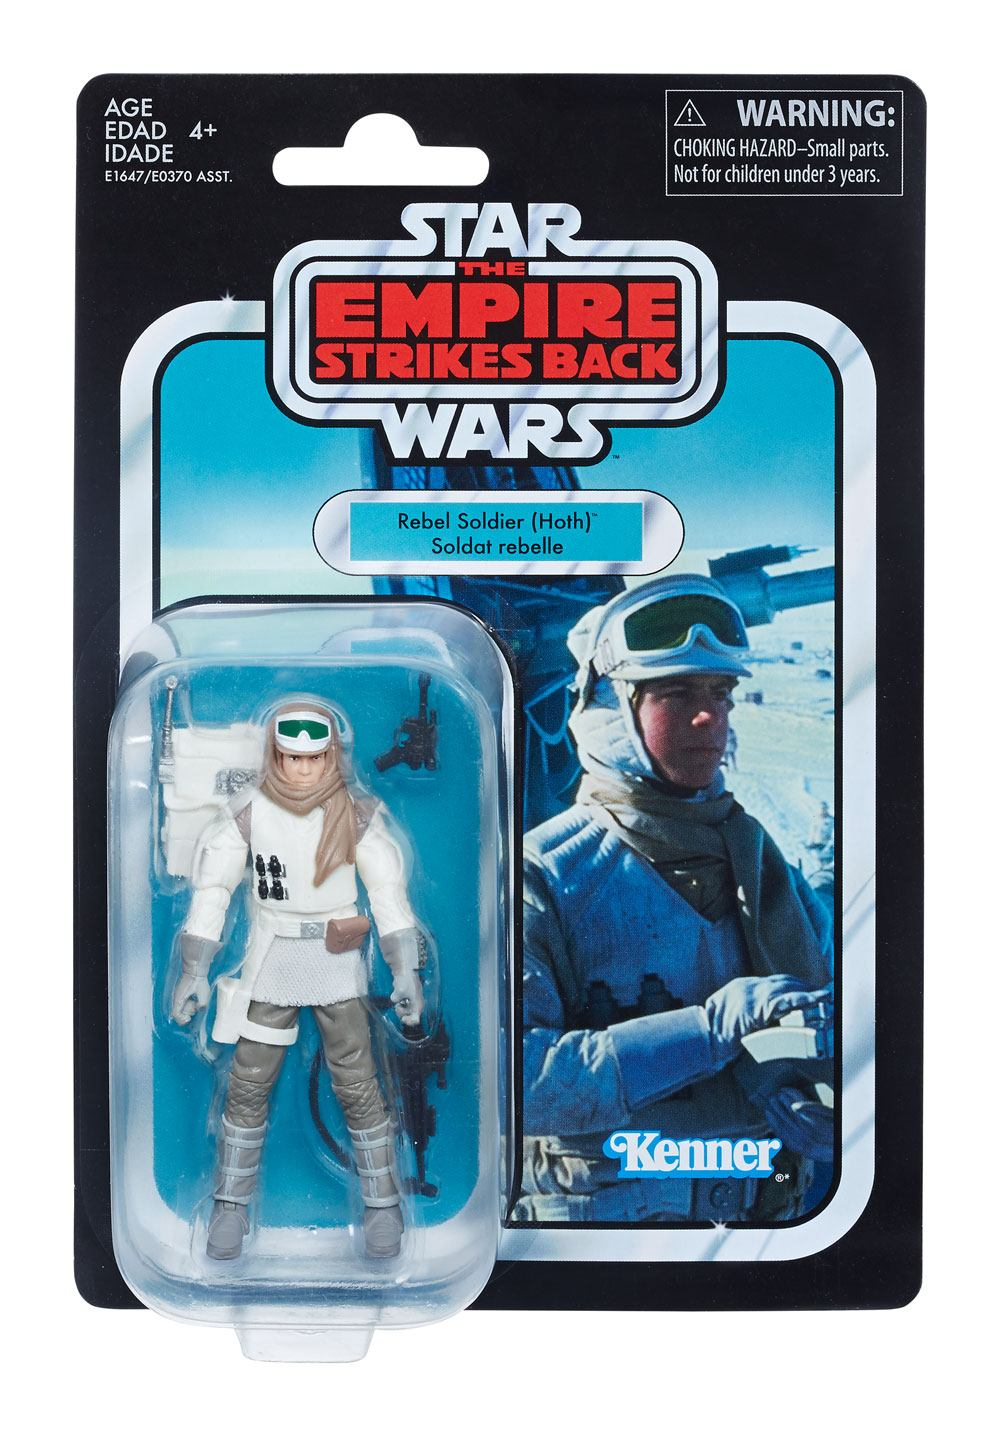 Star Wars Vintage Collection Wave 1 Action Figures Images